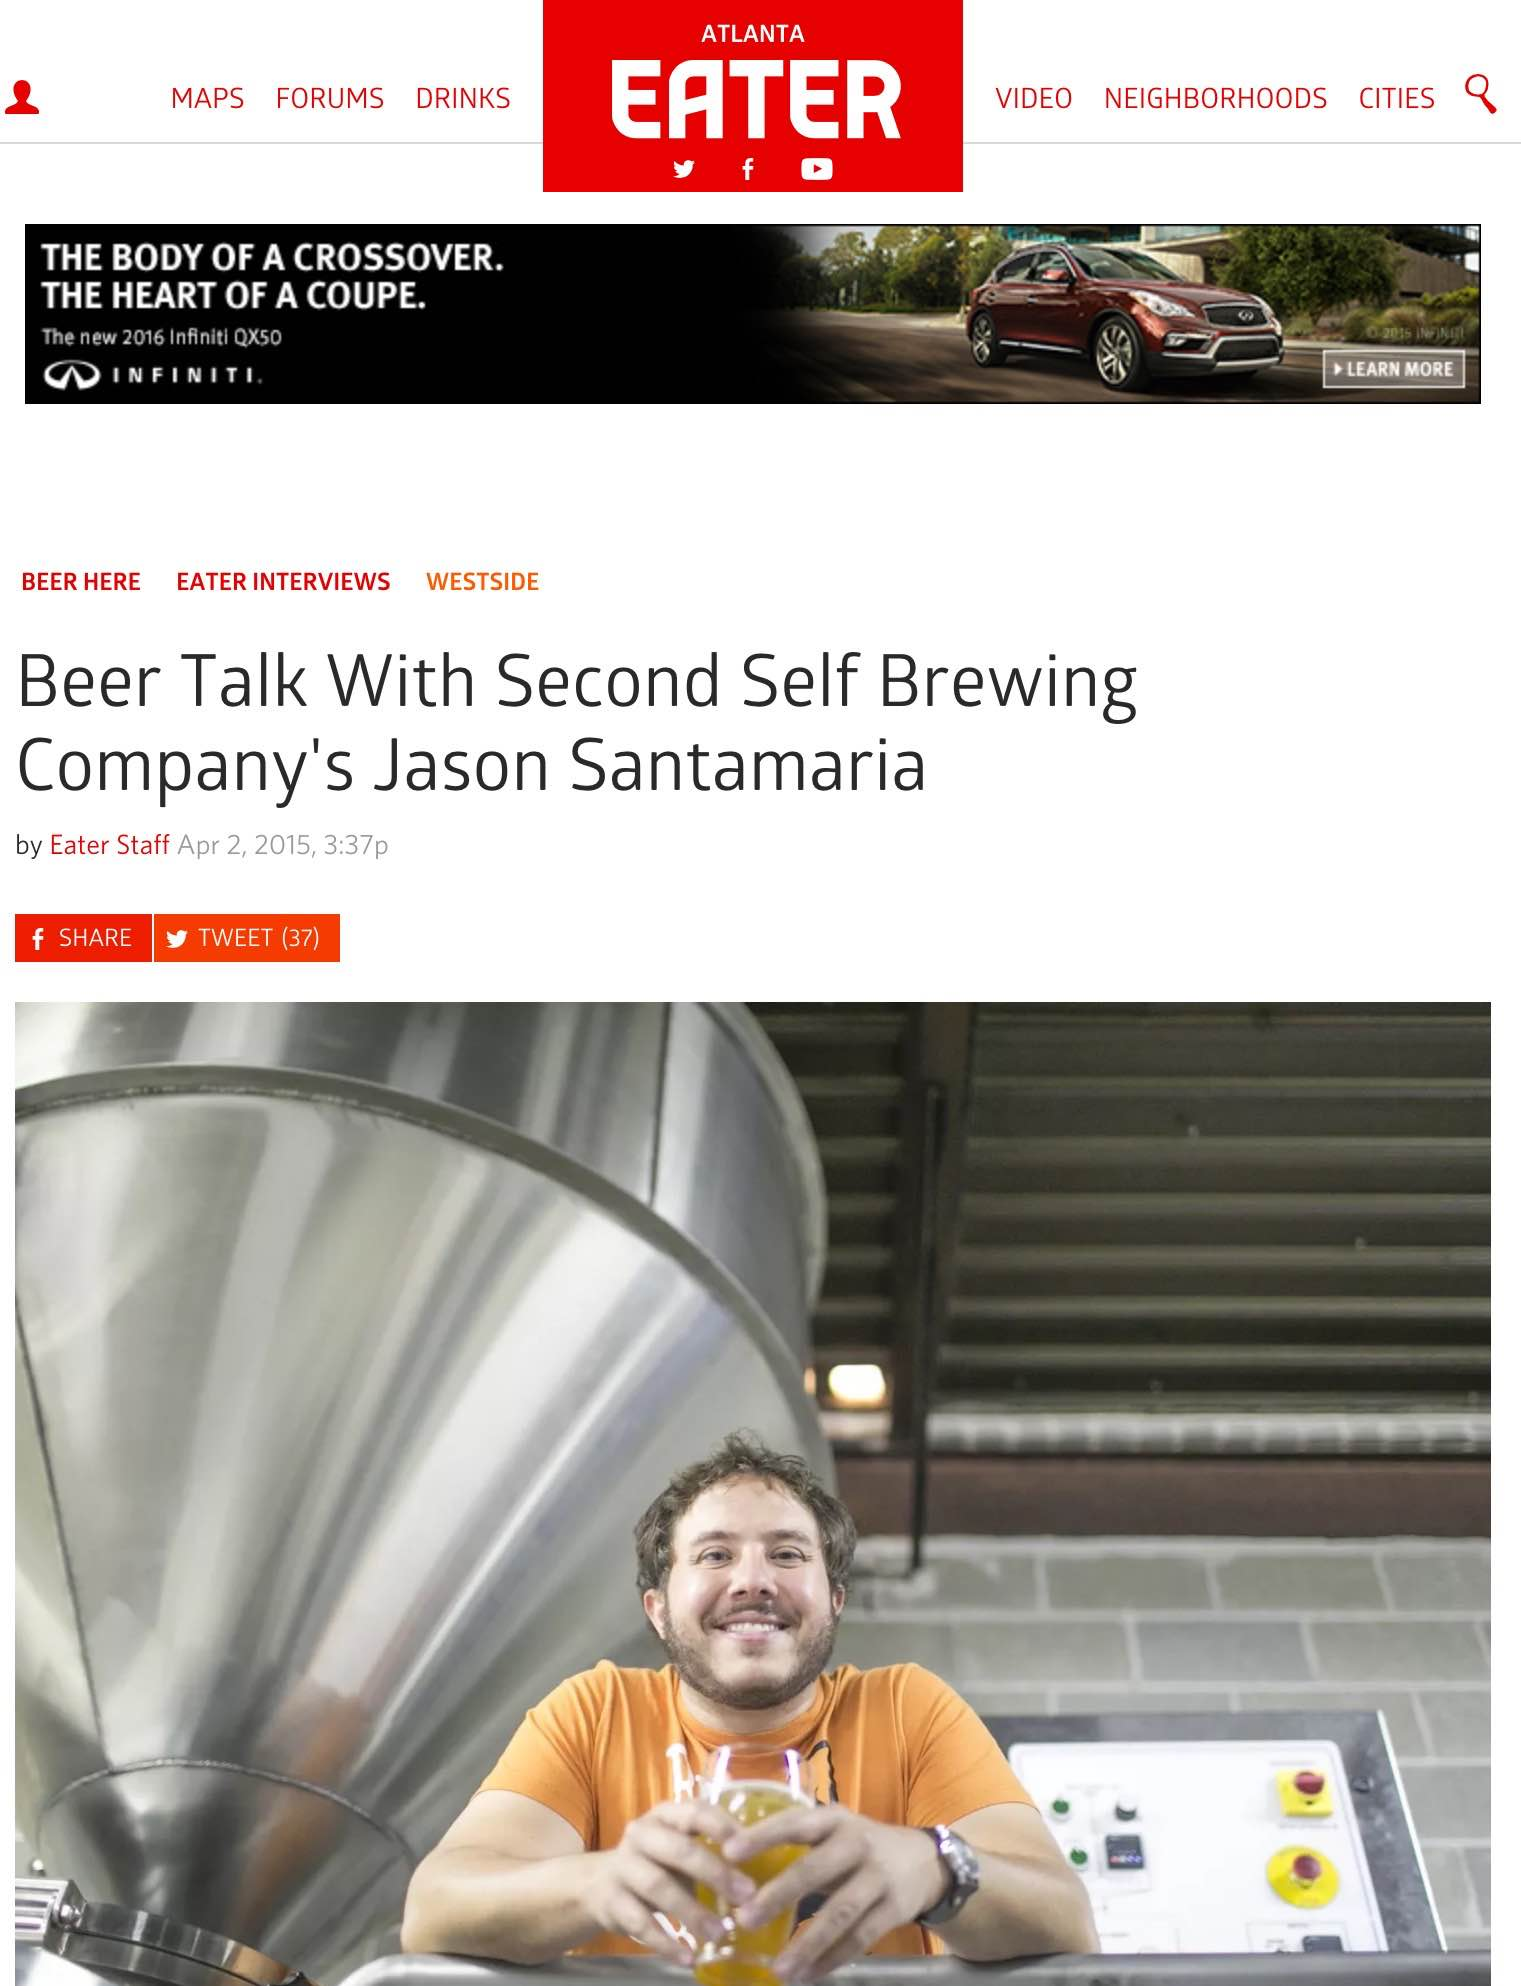 Eater.com    , April 2nd, 2015, Beer Talk With Second Self Brewing Company's Jason Santamaria